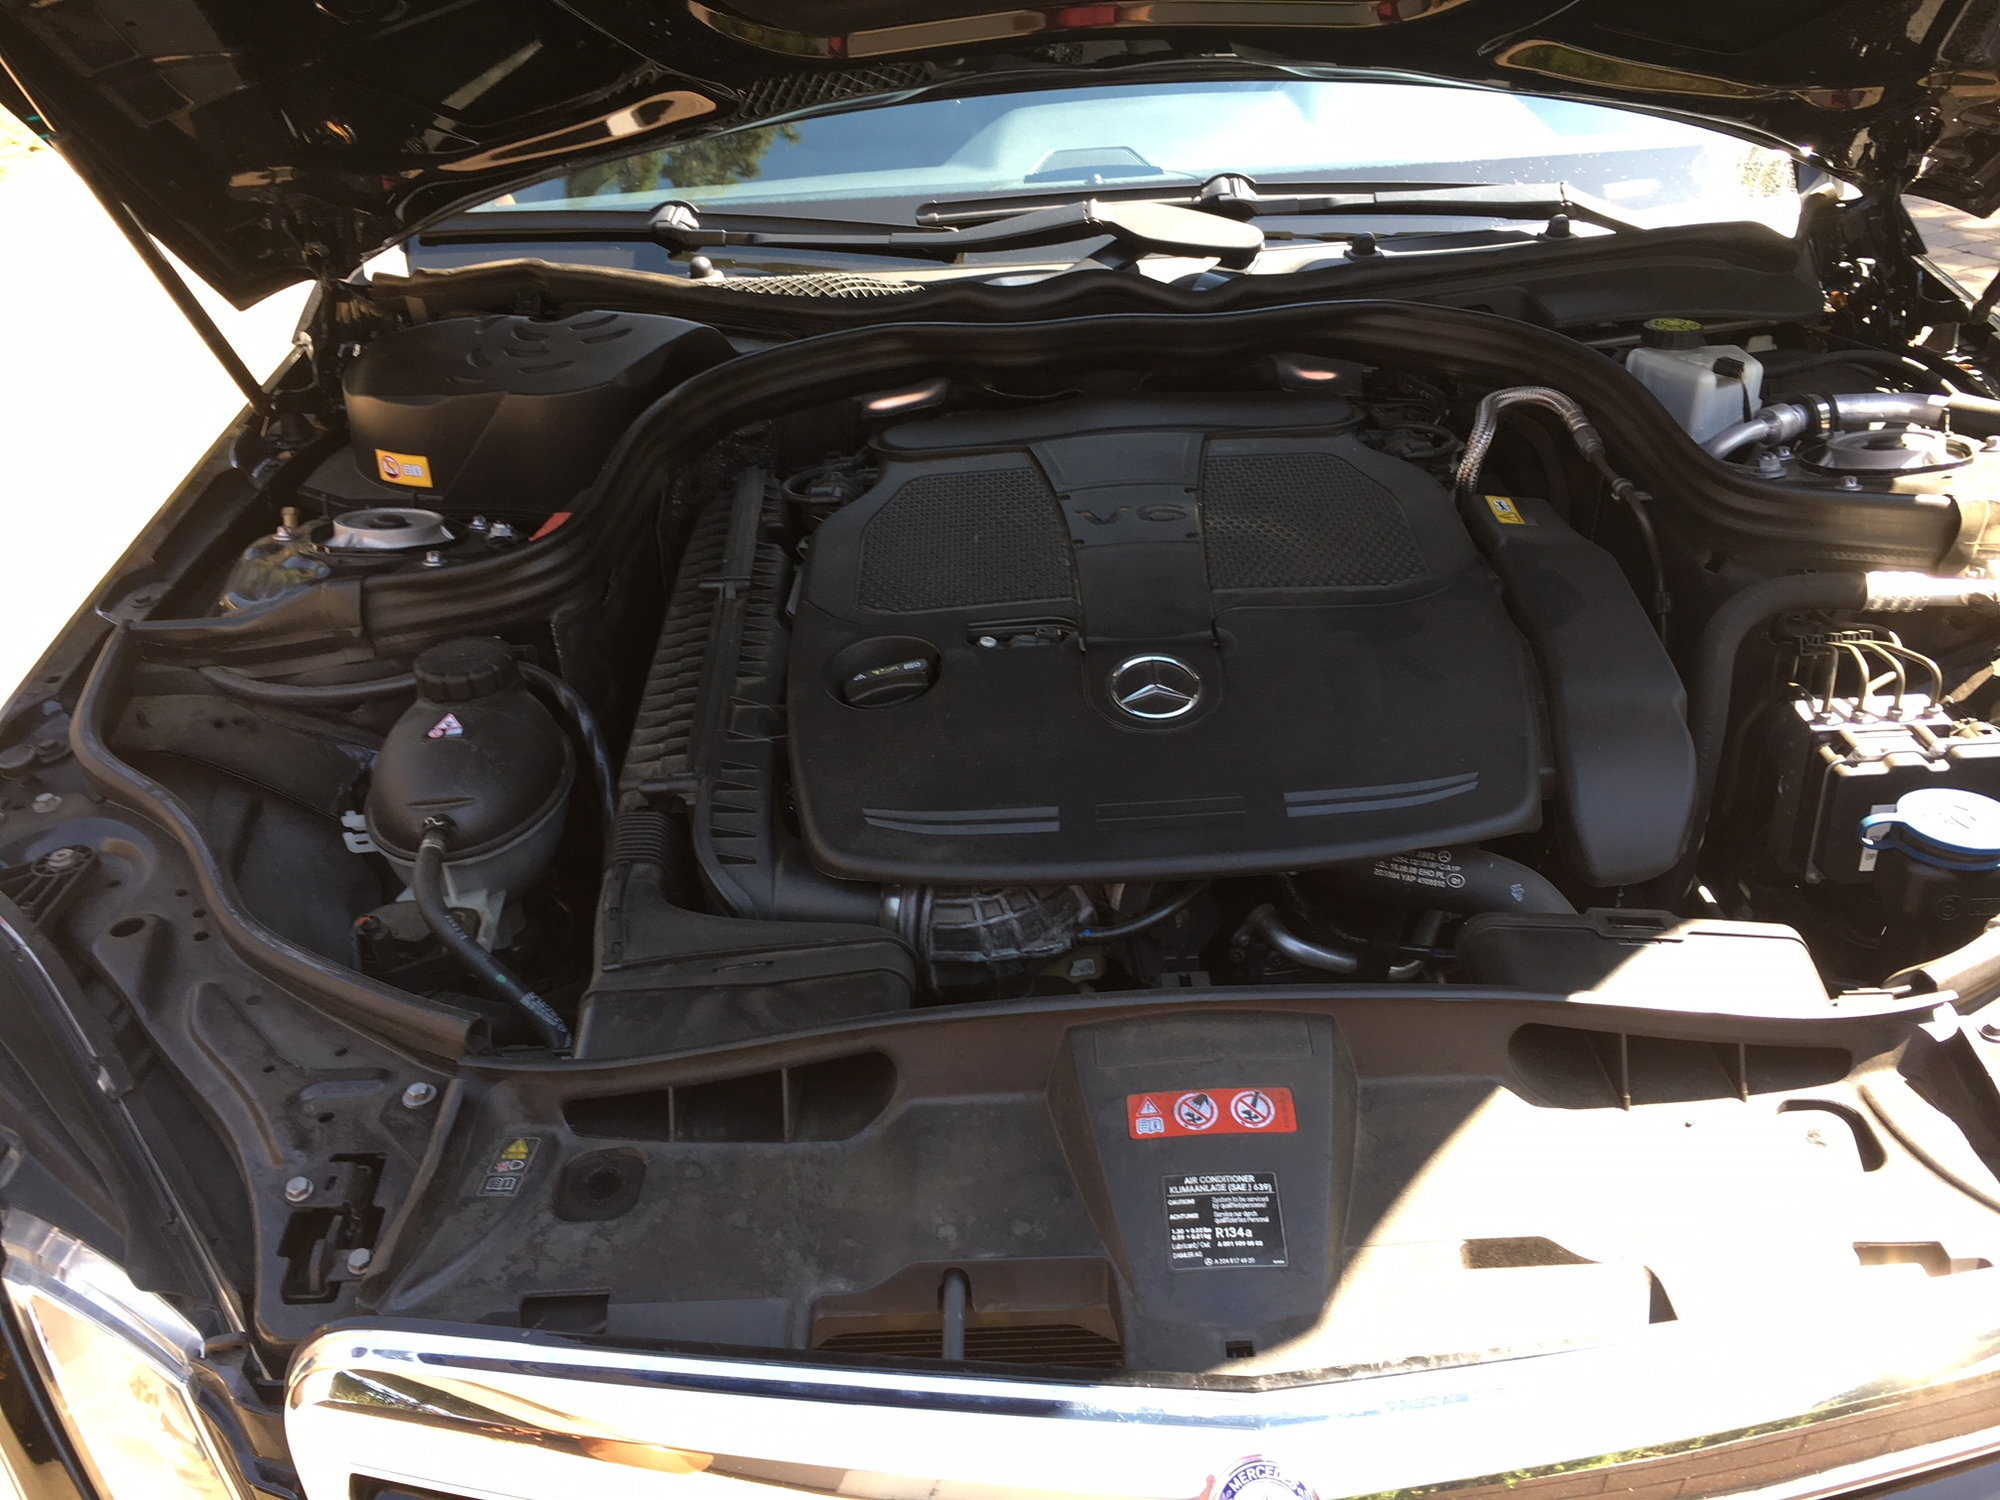 FS: 2013 Mercedes Benz E350 4Matic - One owner - ONLY ...